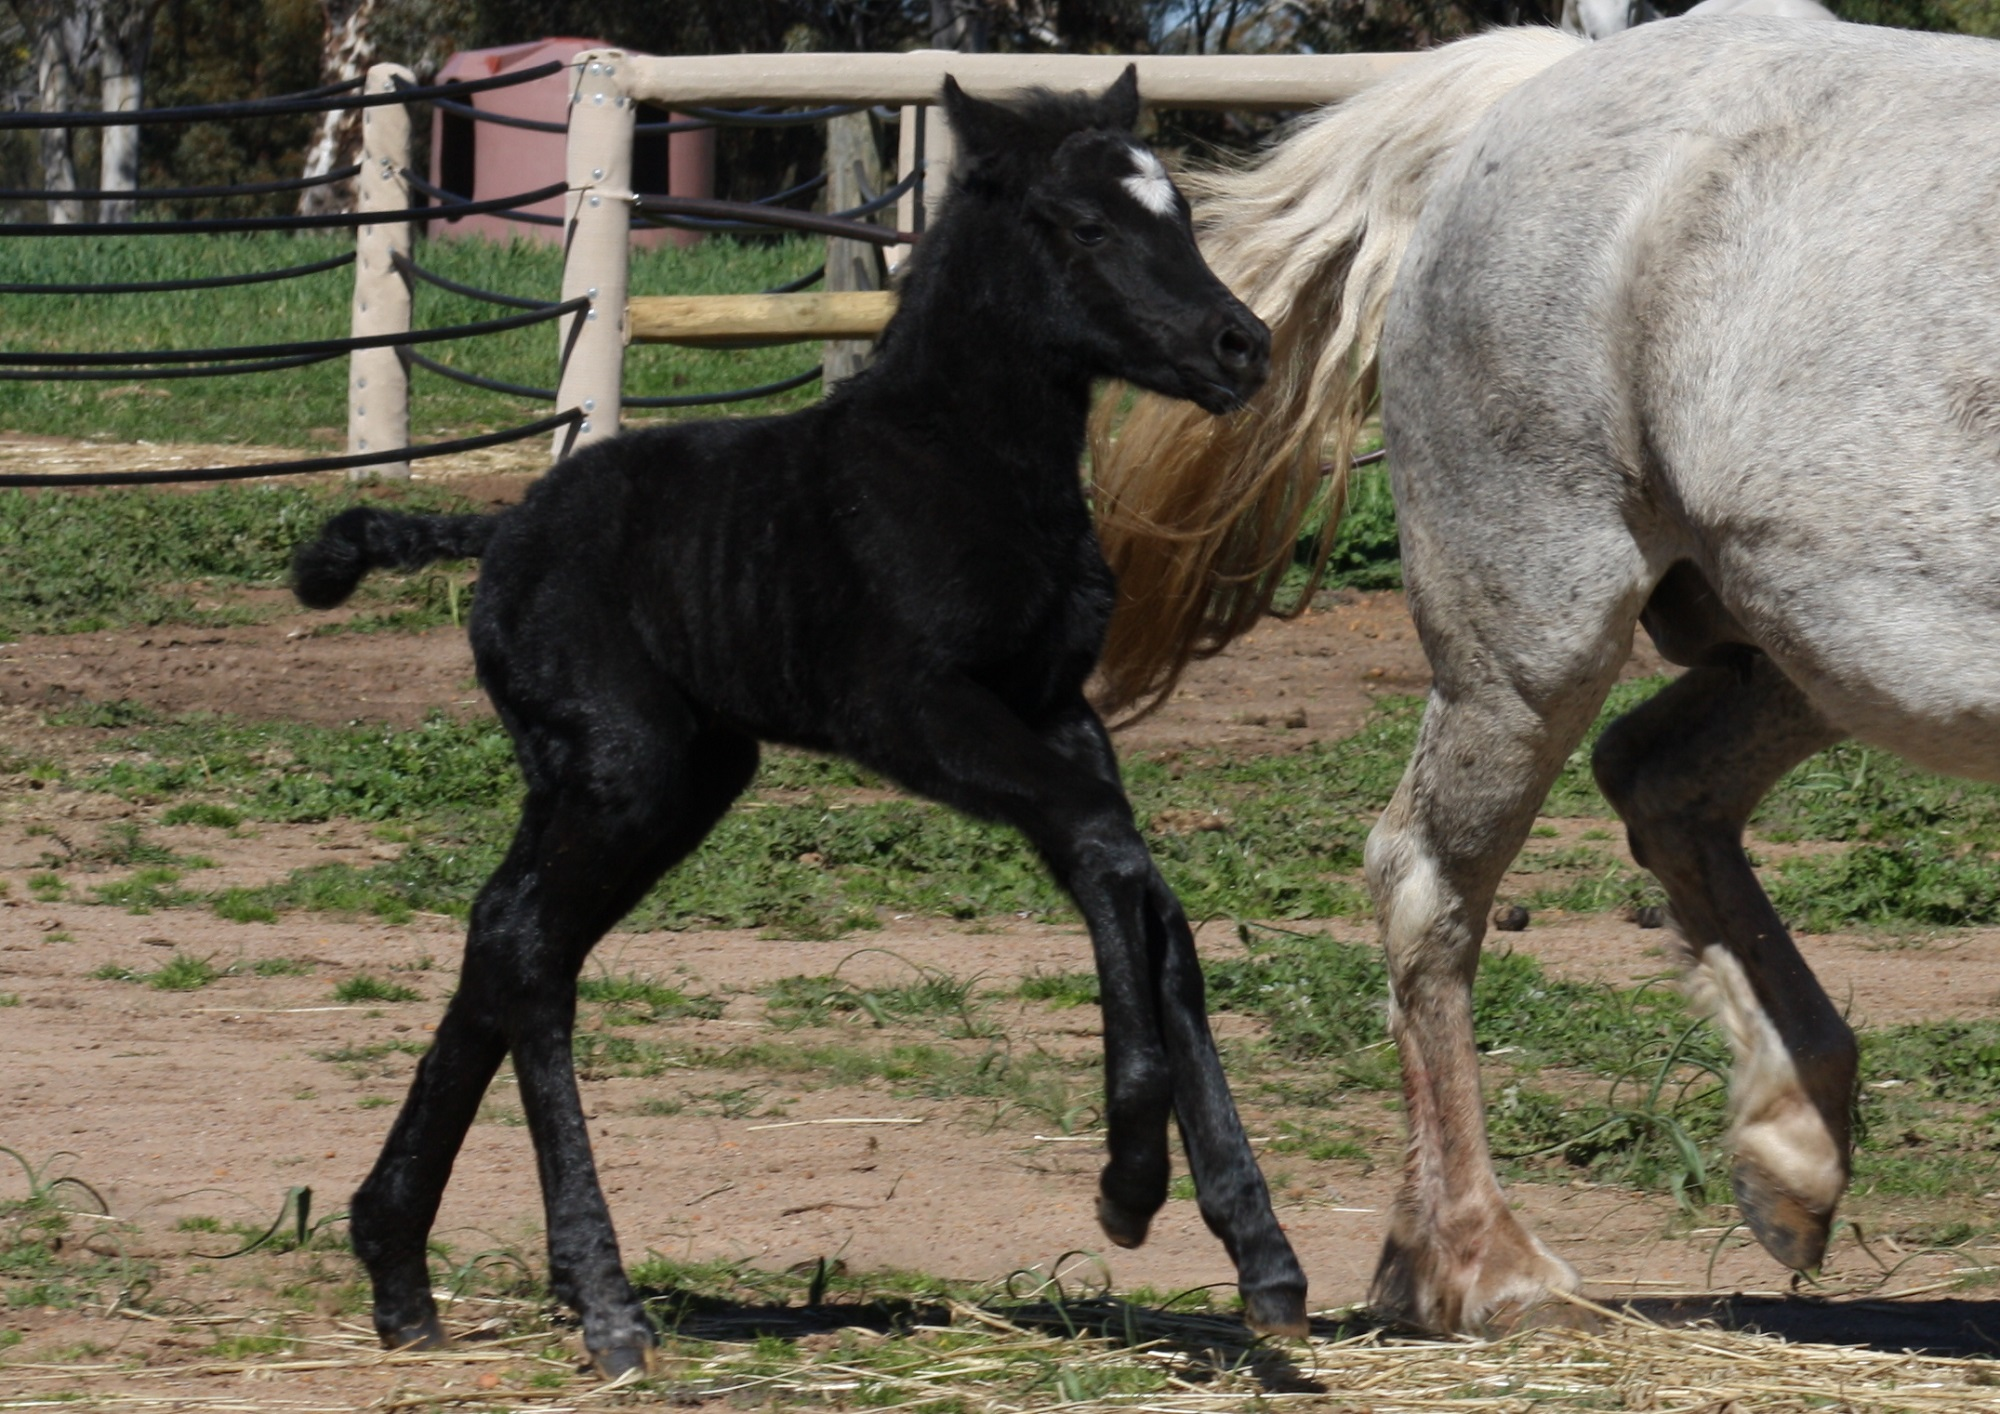 IMG 5077 crop email 2016 Foals